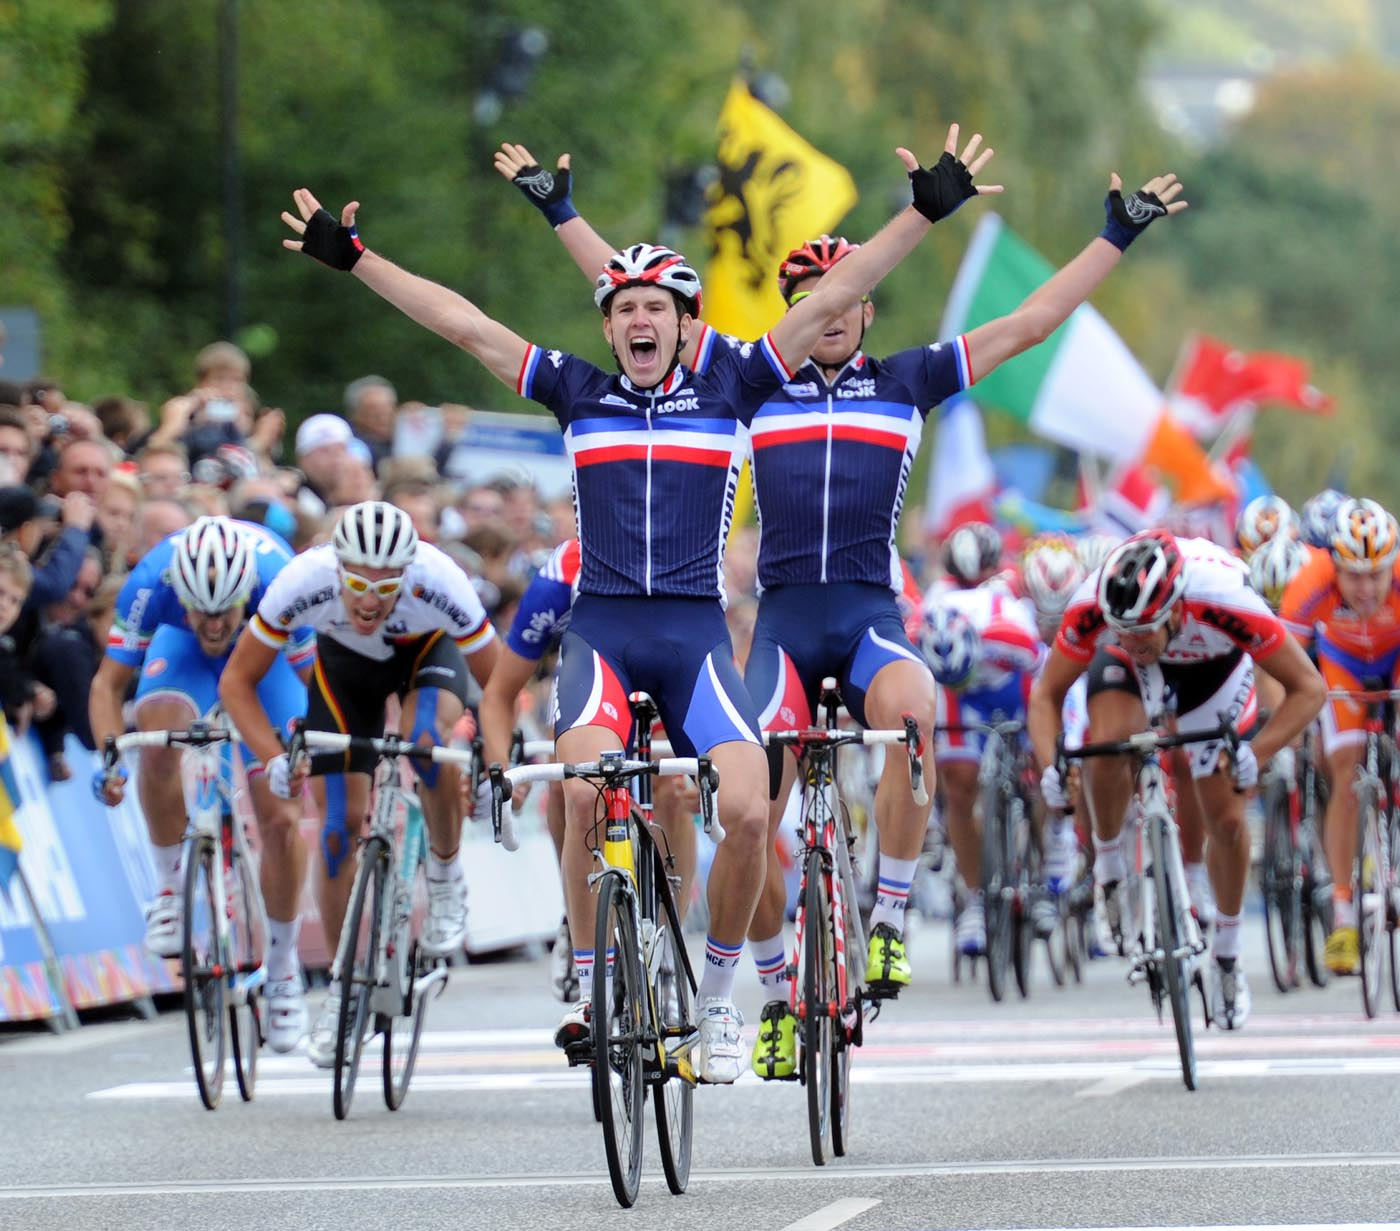 Arnaud Demare wins under-23 men